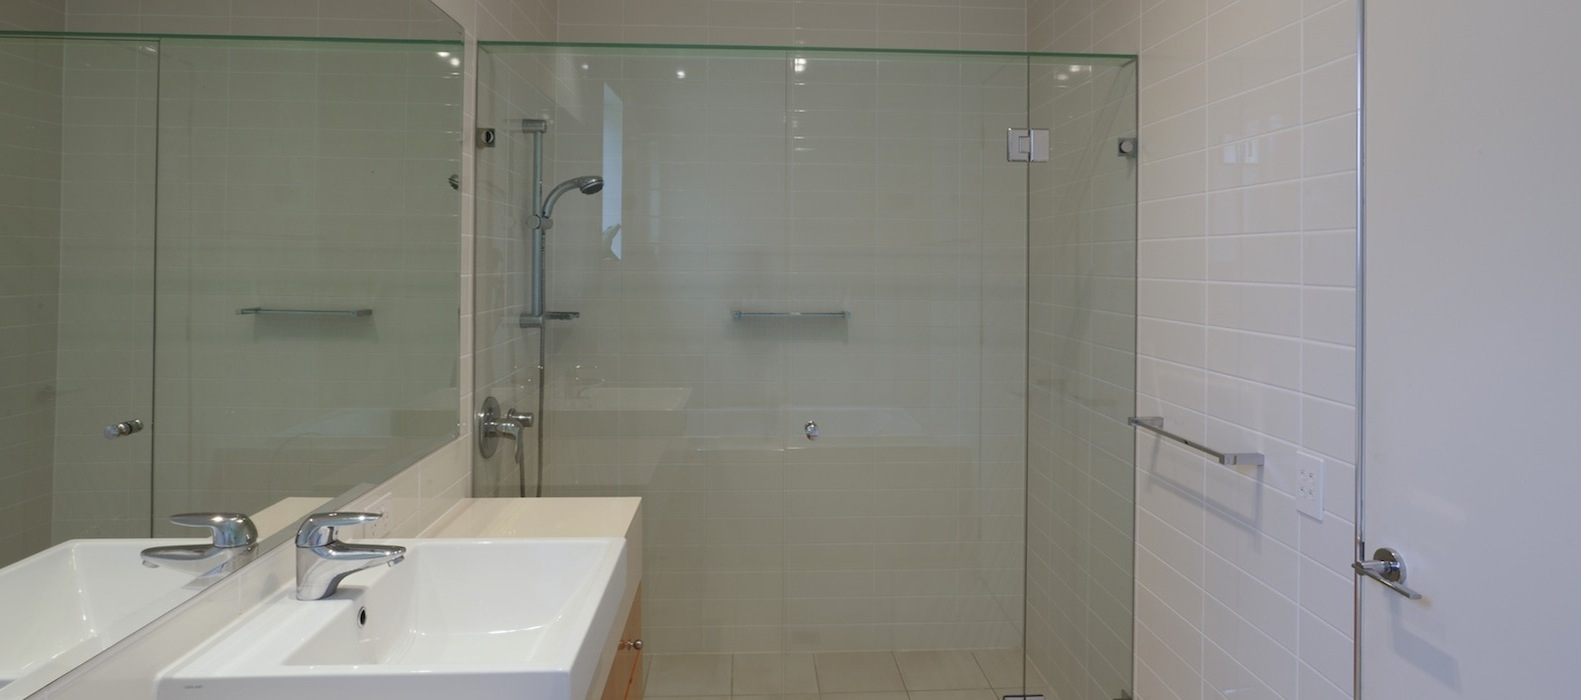 A1 Glass Metro Mirror & Shower Doorservices a1 glass metro mirror